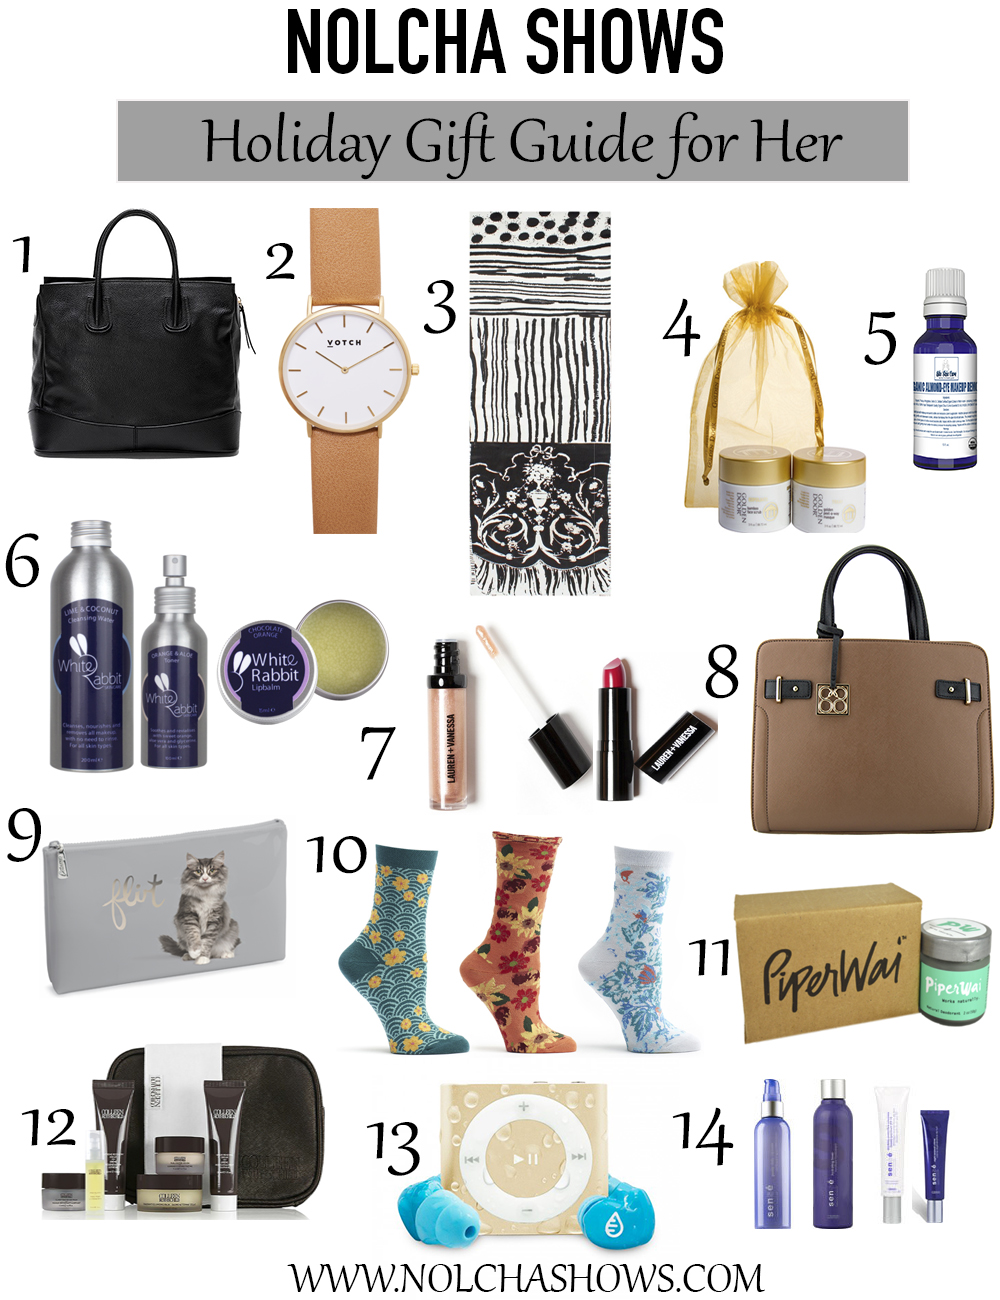 mmh-gift-guide-for-her